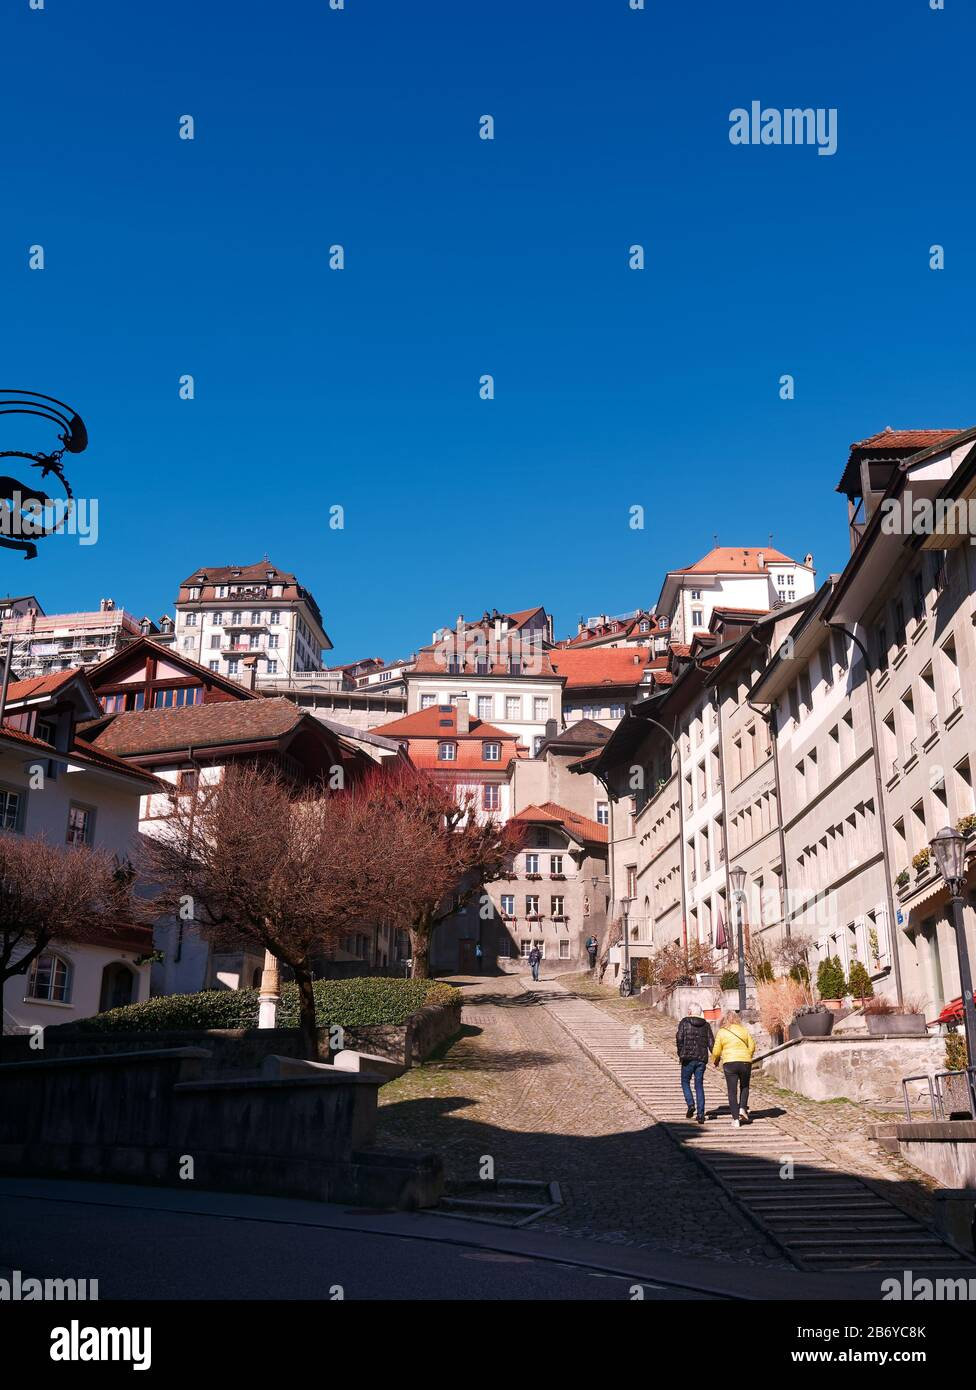 View of the Escalier du Court-Chemin in the old town of Fribourg, Switzerland. Stock Photo